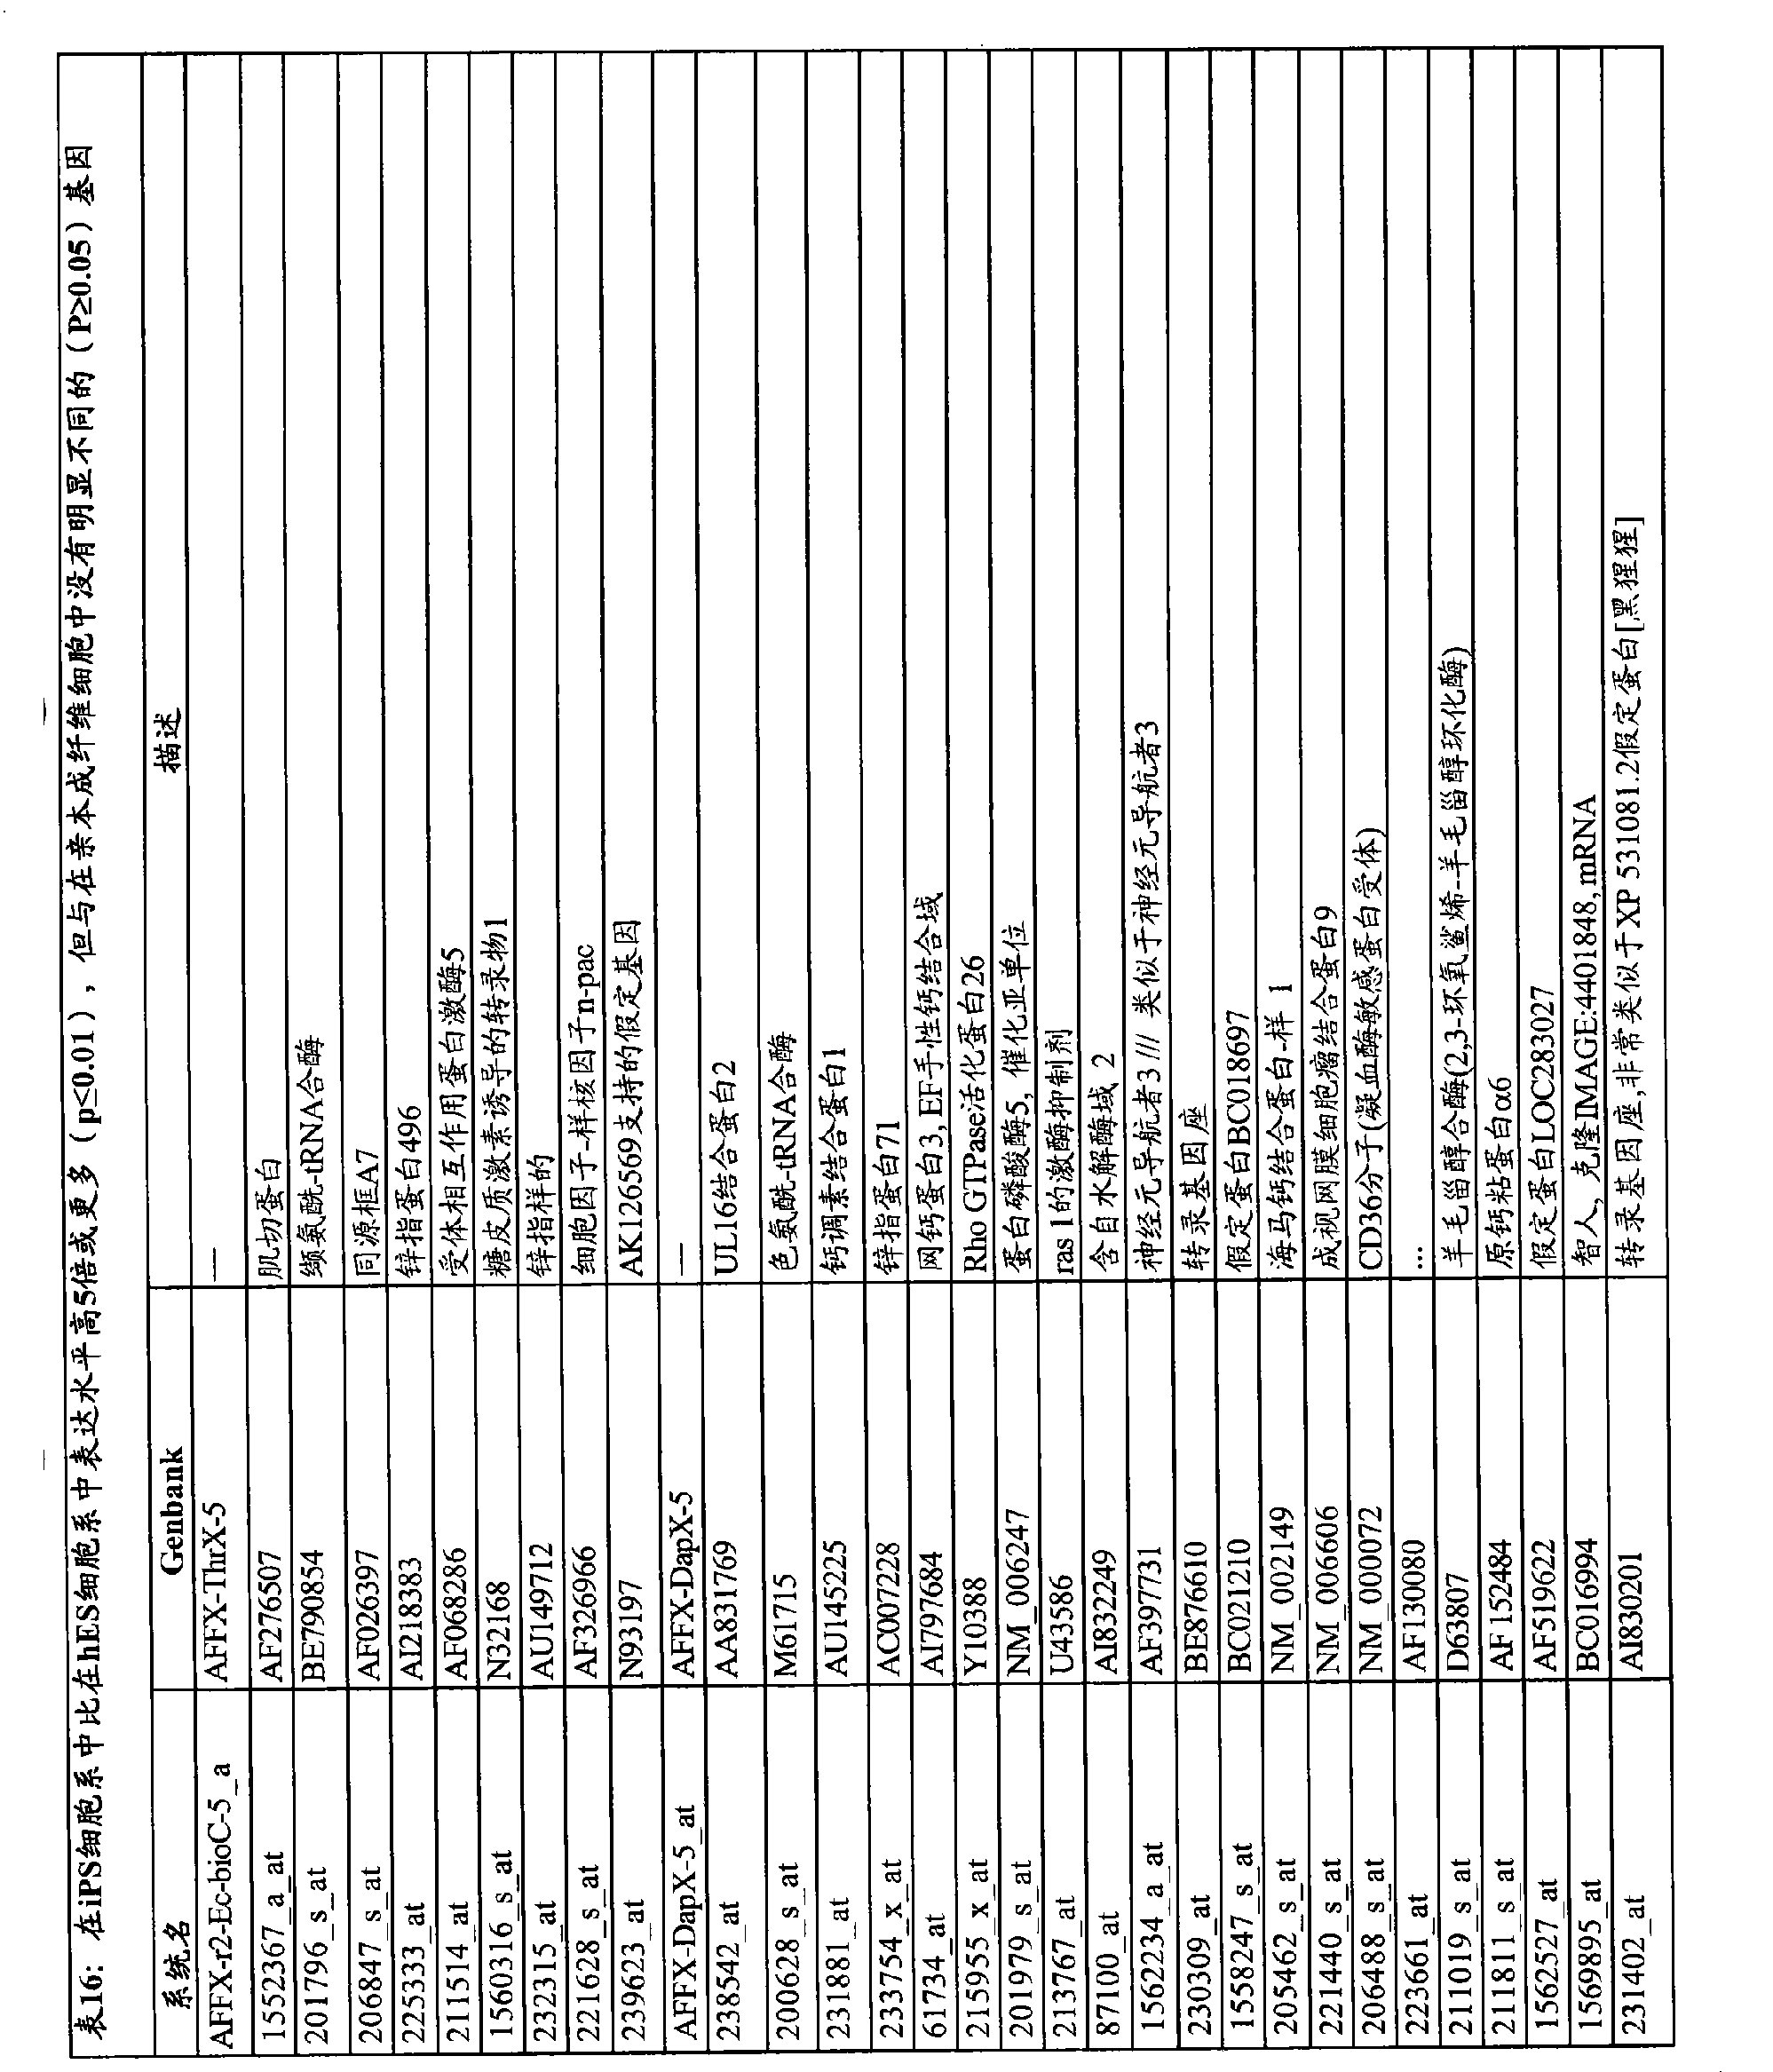 CN102317448A - Multipotent/pluripotent cells and methods